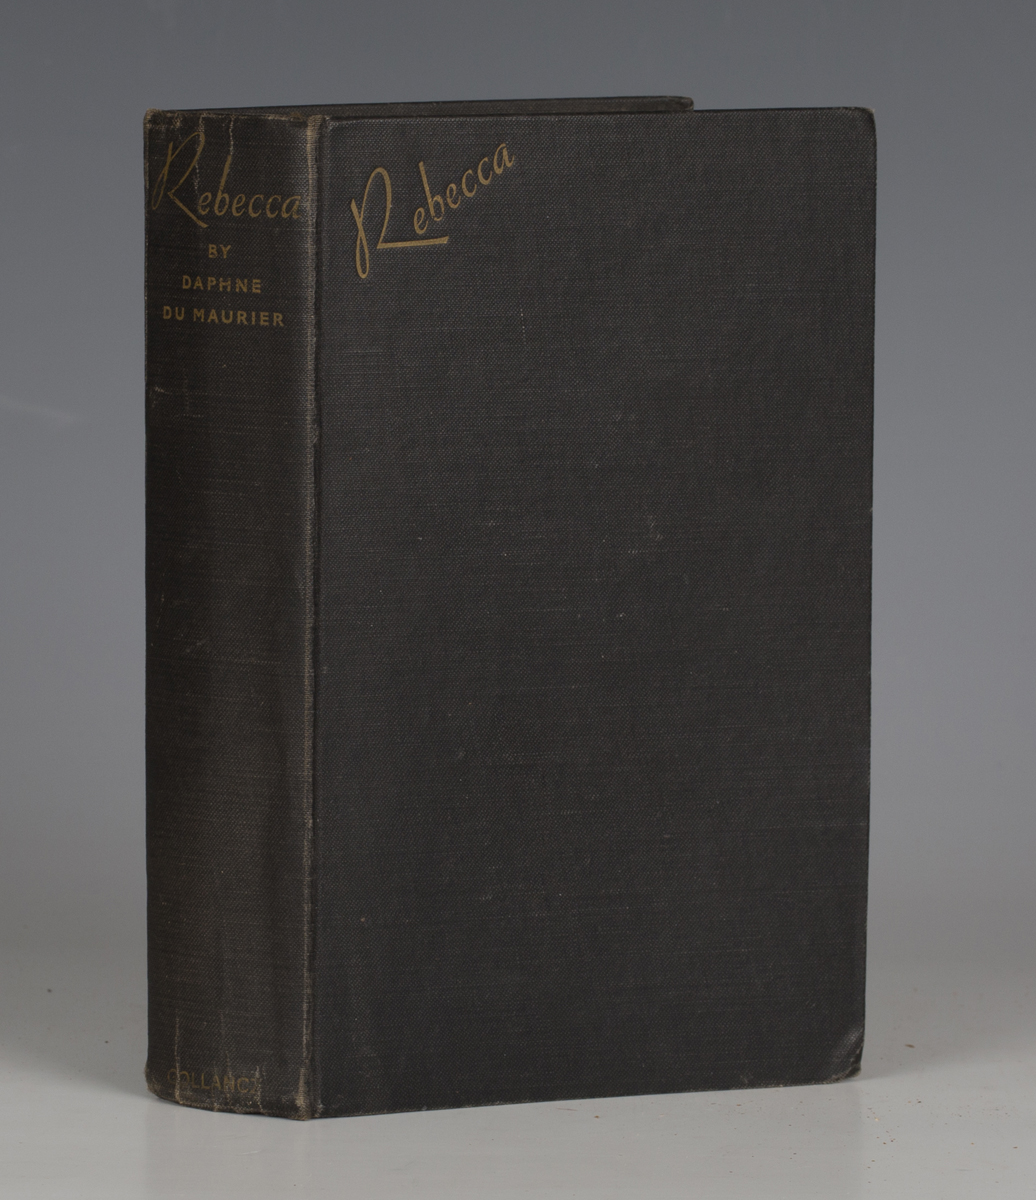 DU MAURIER, Daphne. Rebecca. London: Gollancz, 1938. First edition, signed by the author, 8vo (197 x